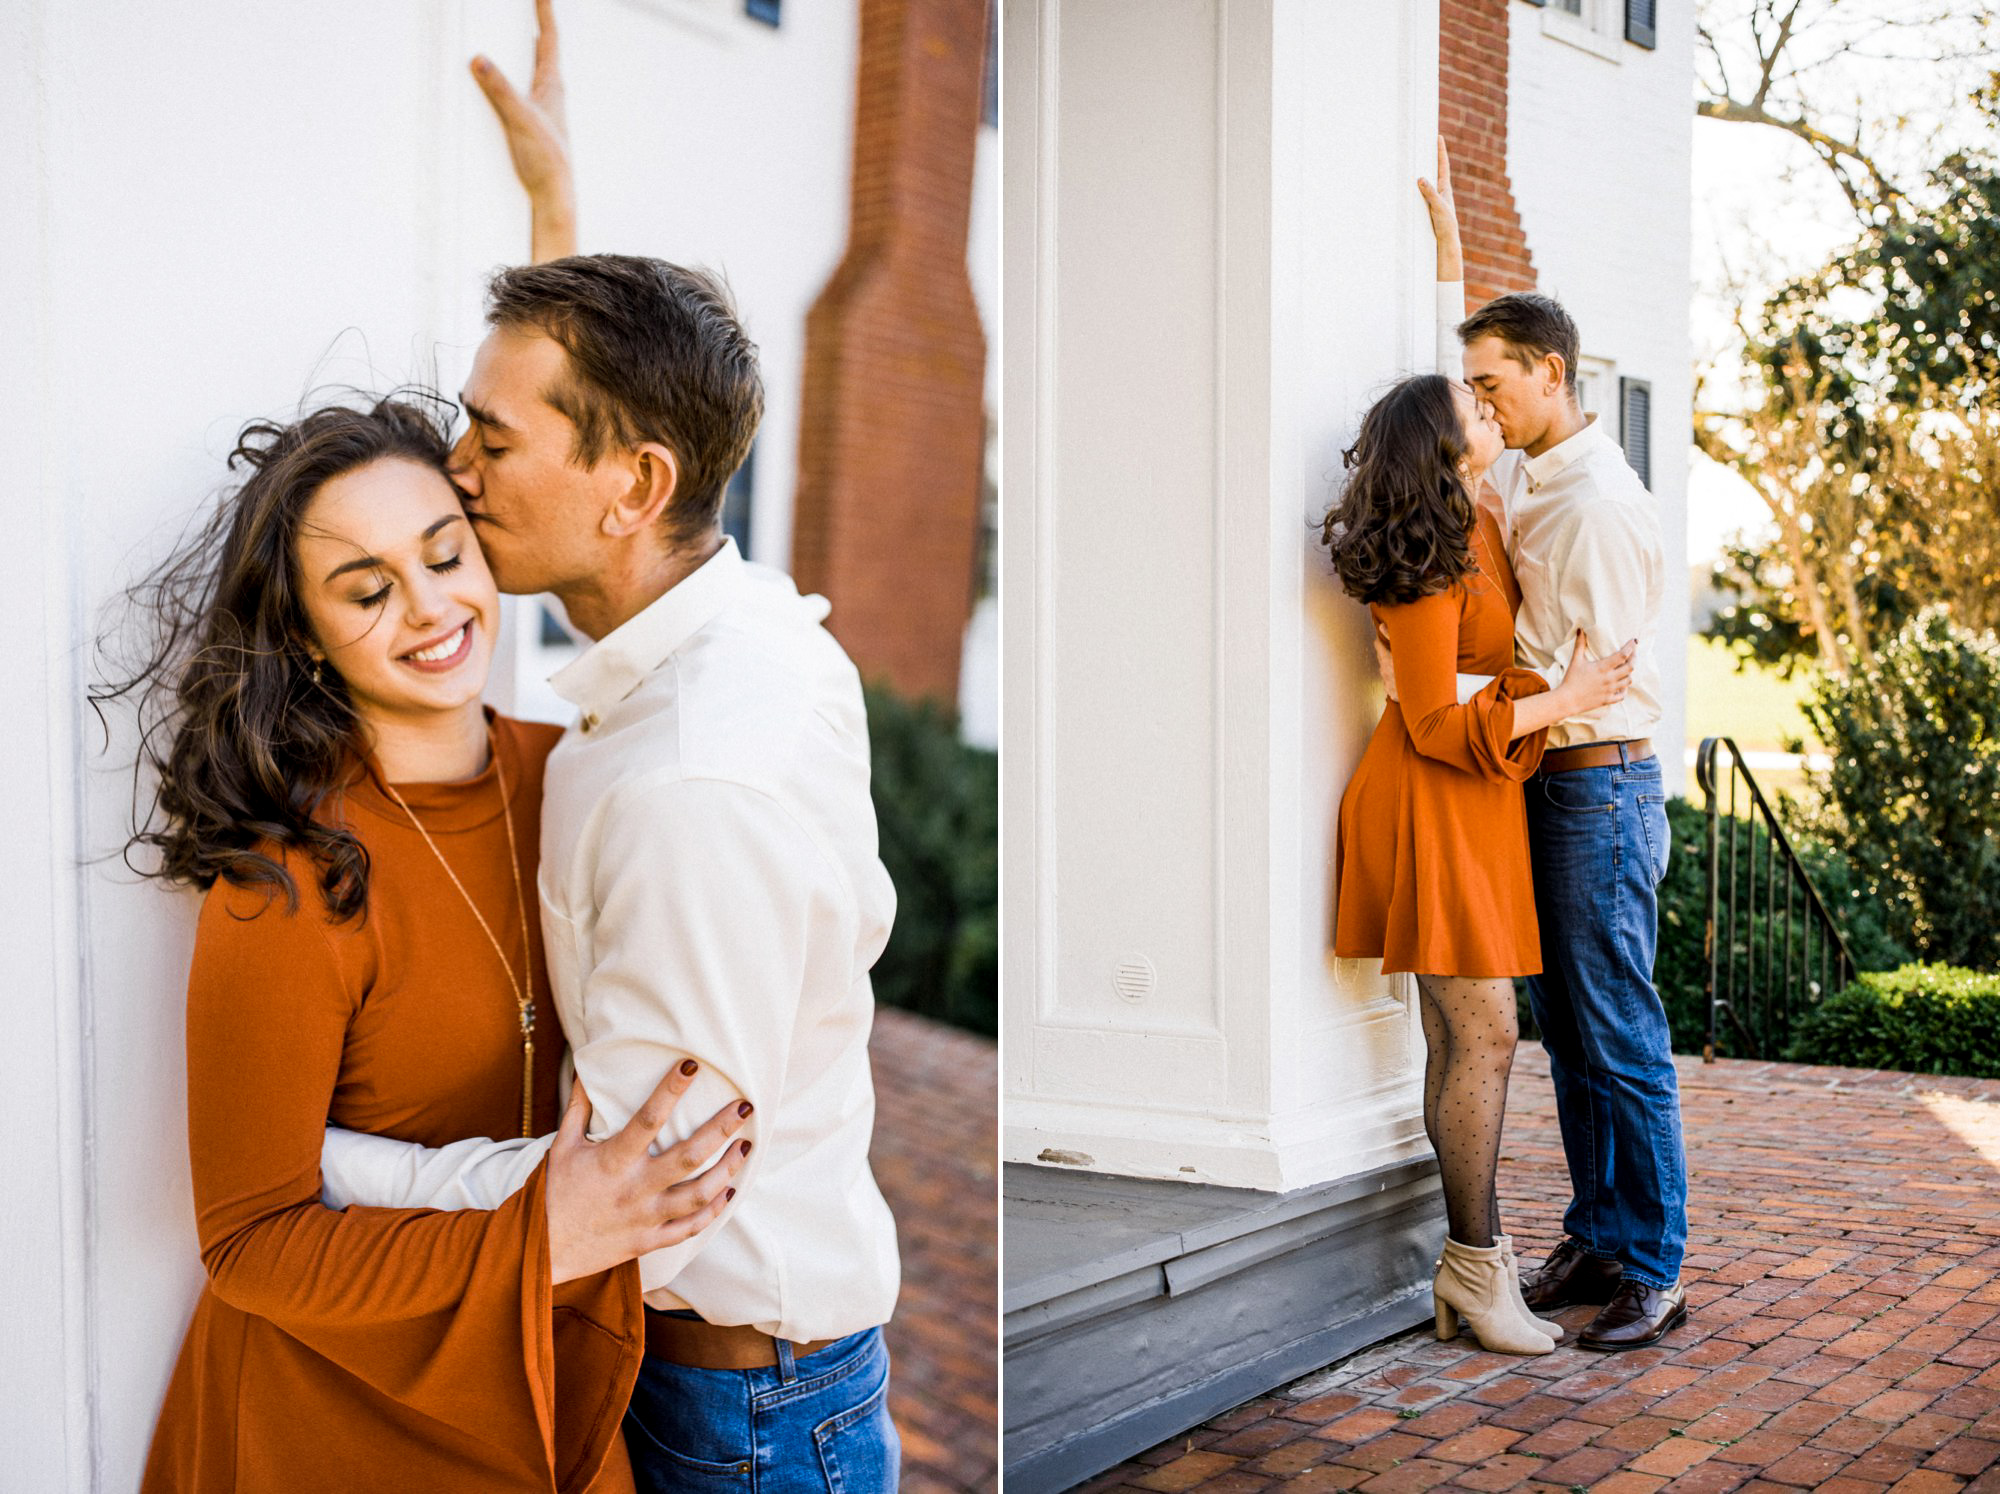 engagement-photography-88-love-stories_0009.jpg